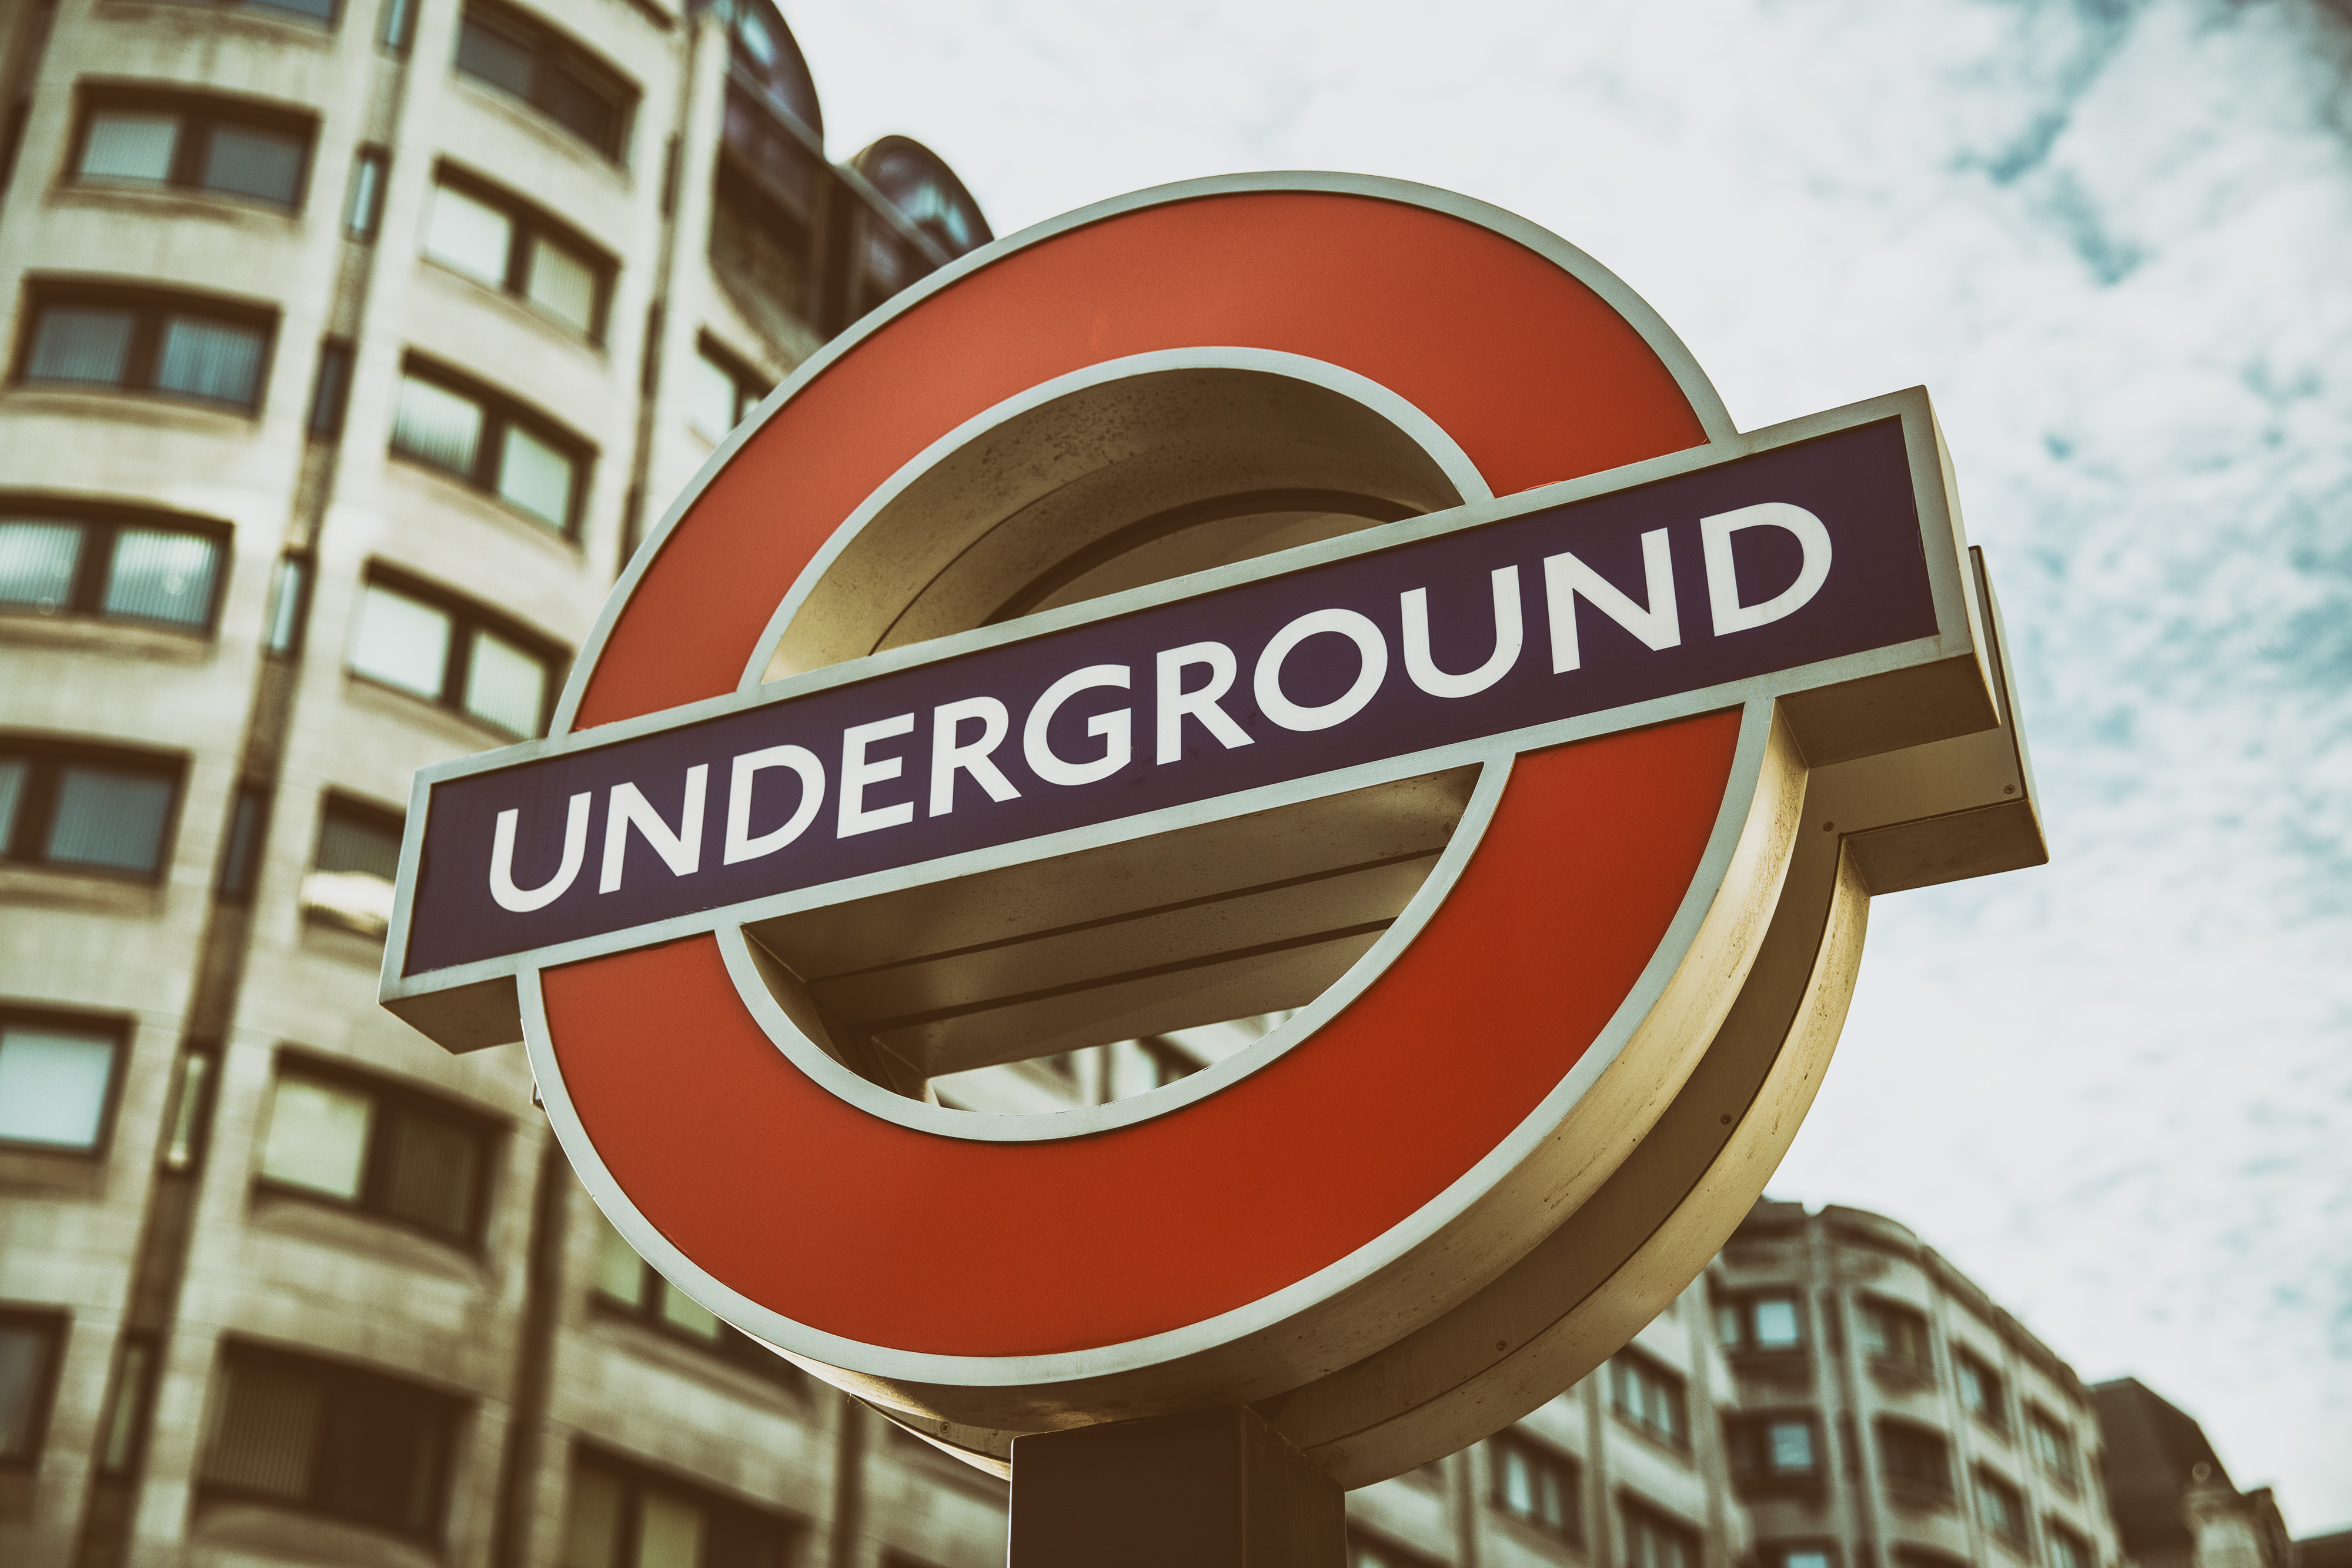 London underground expected to buckle under pressure from over-commuting